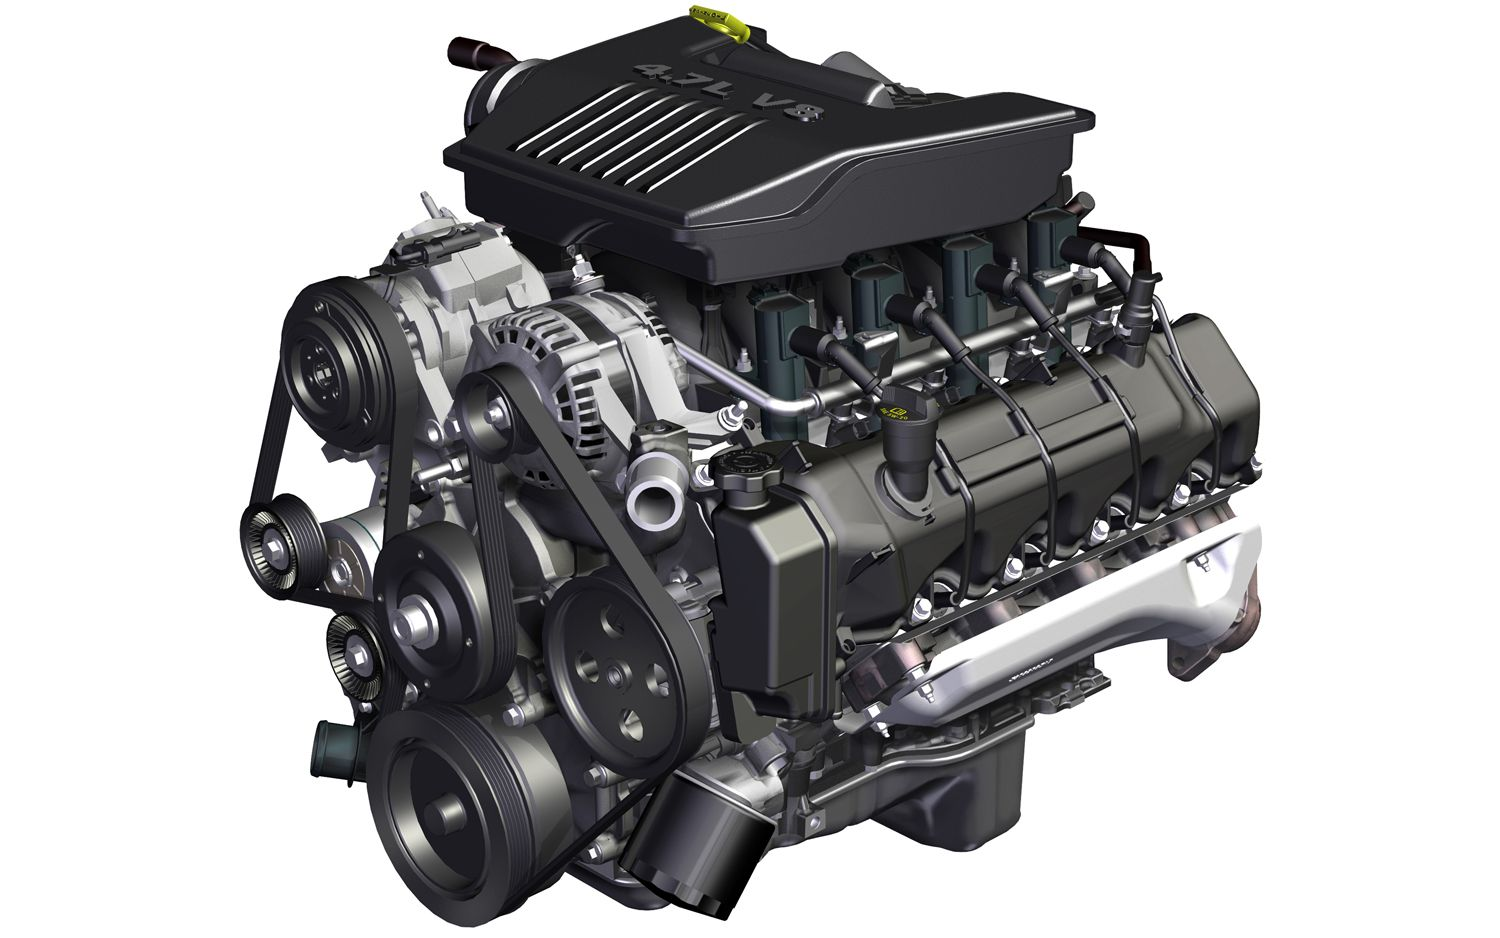 2008-dodge-dakota-4-7-liter-v-8-engine.jpg